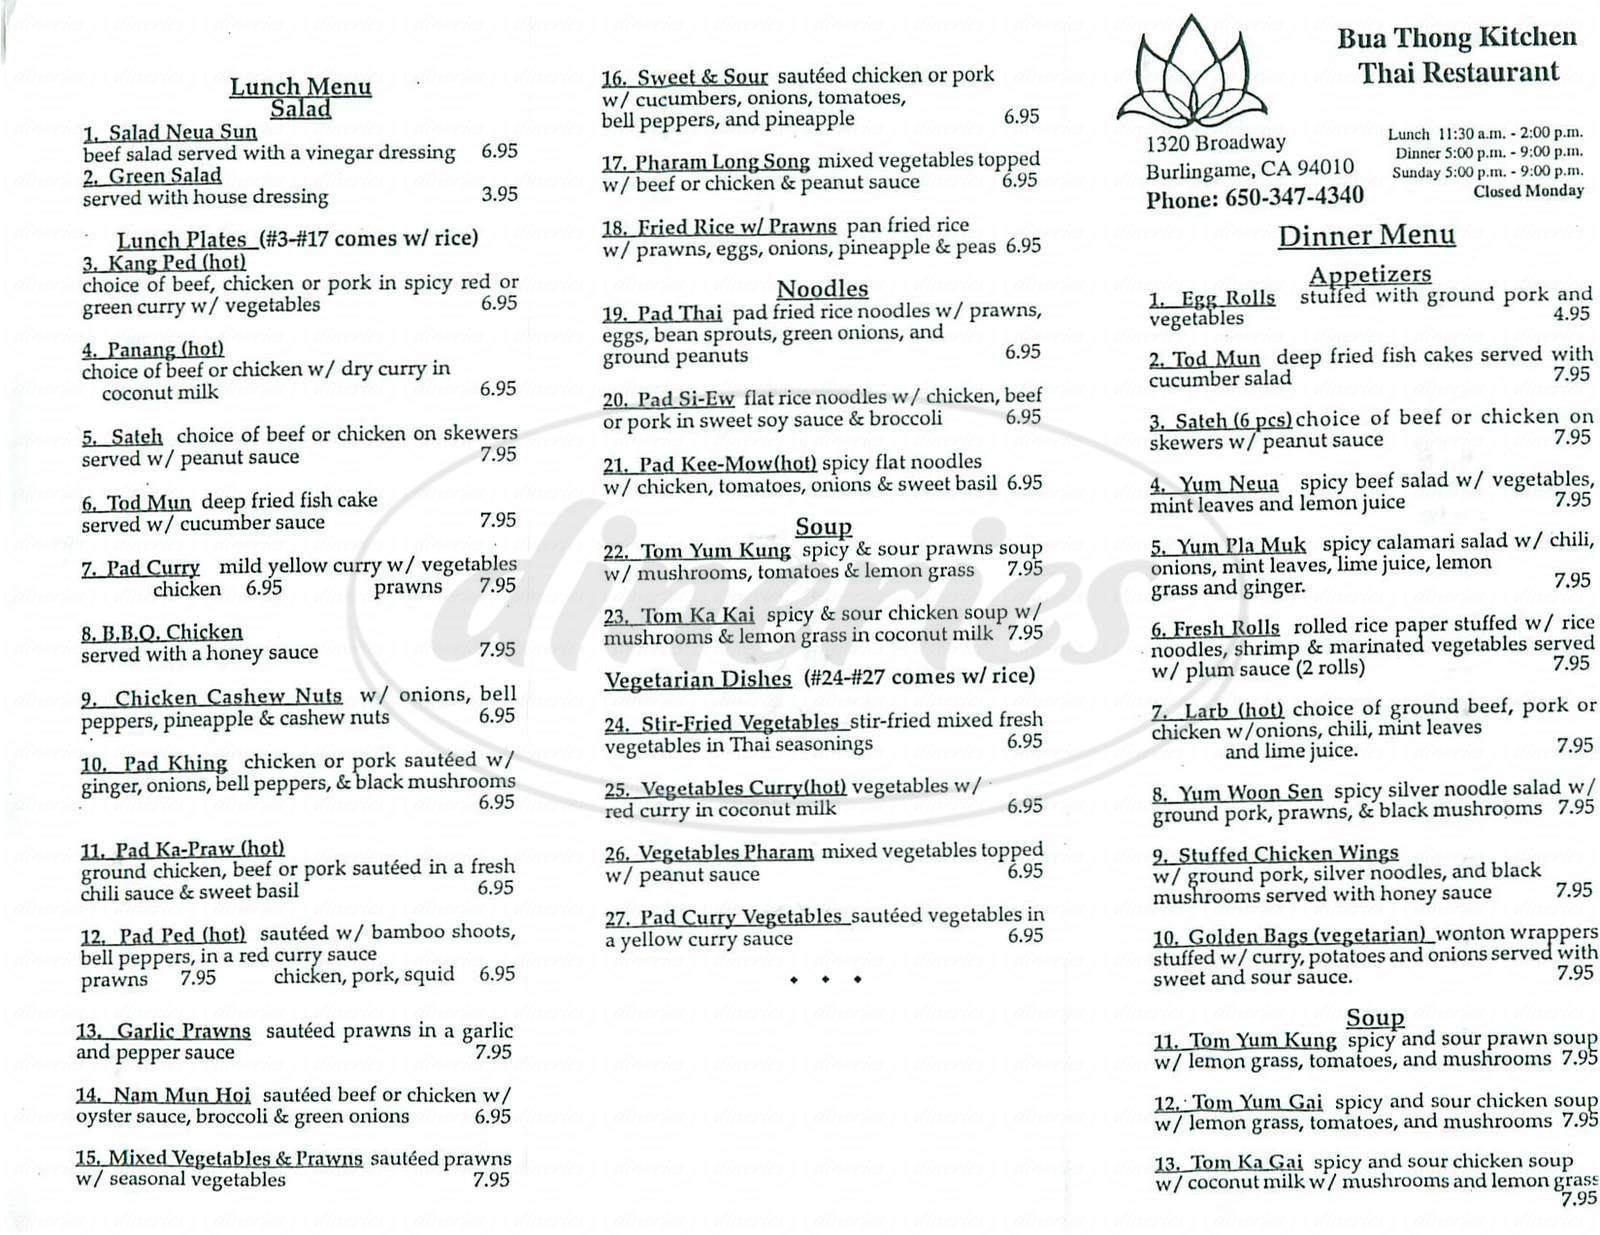 menu for Bua Thong Kitchen